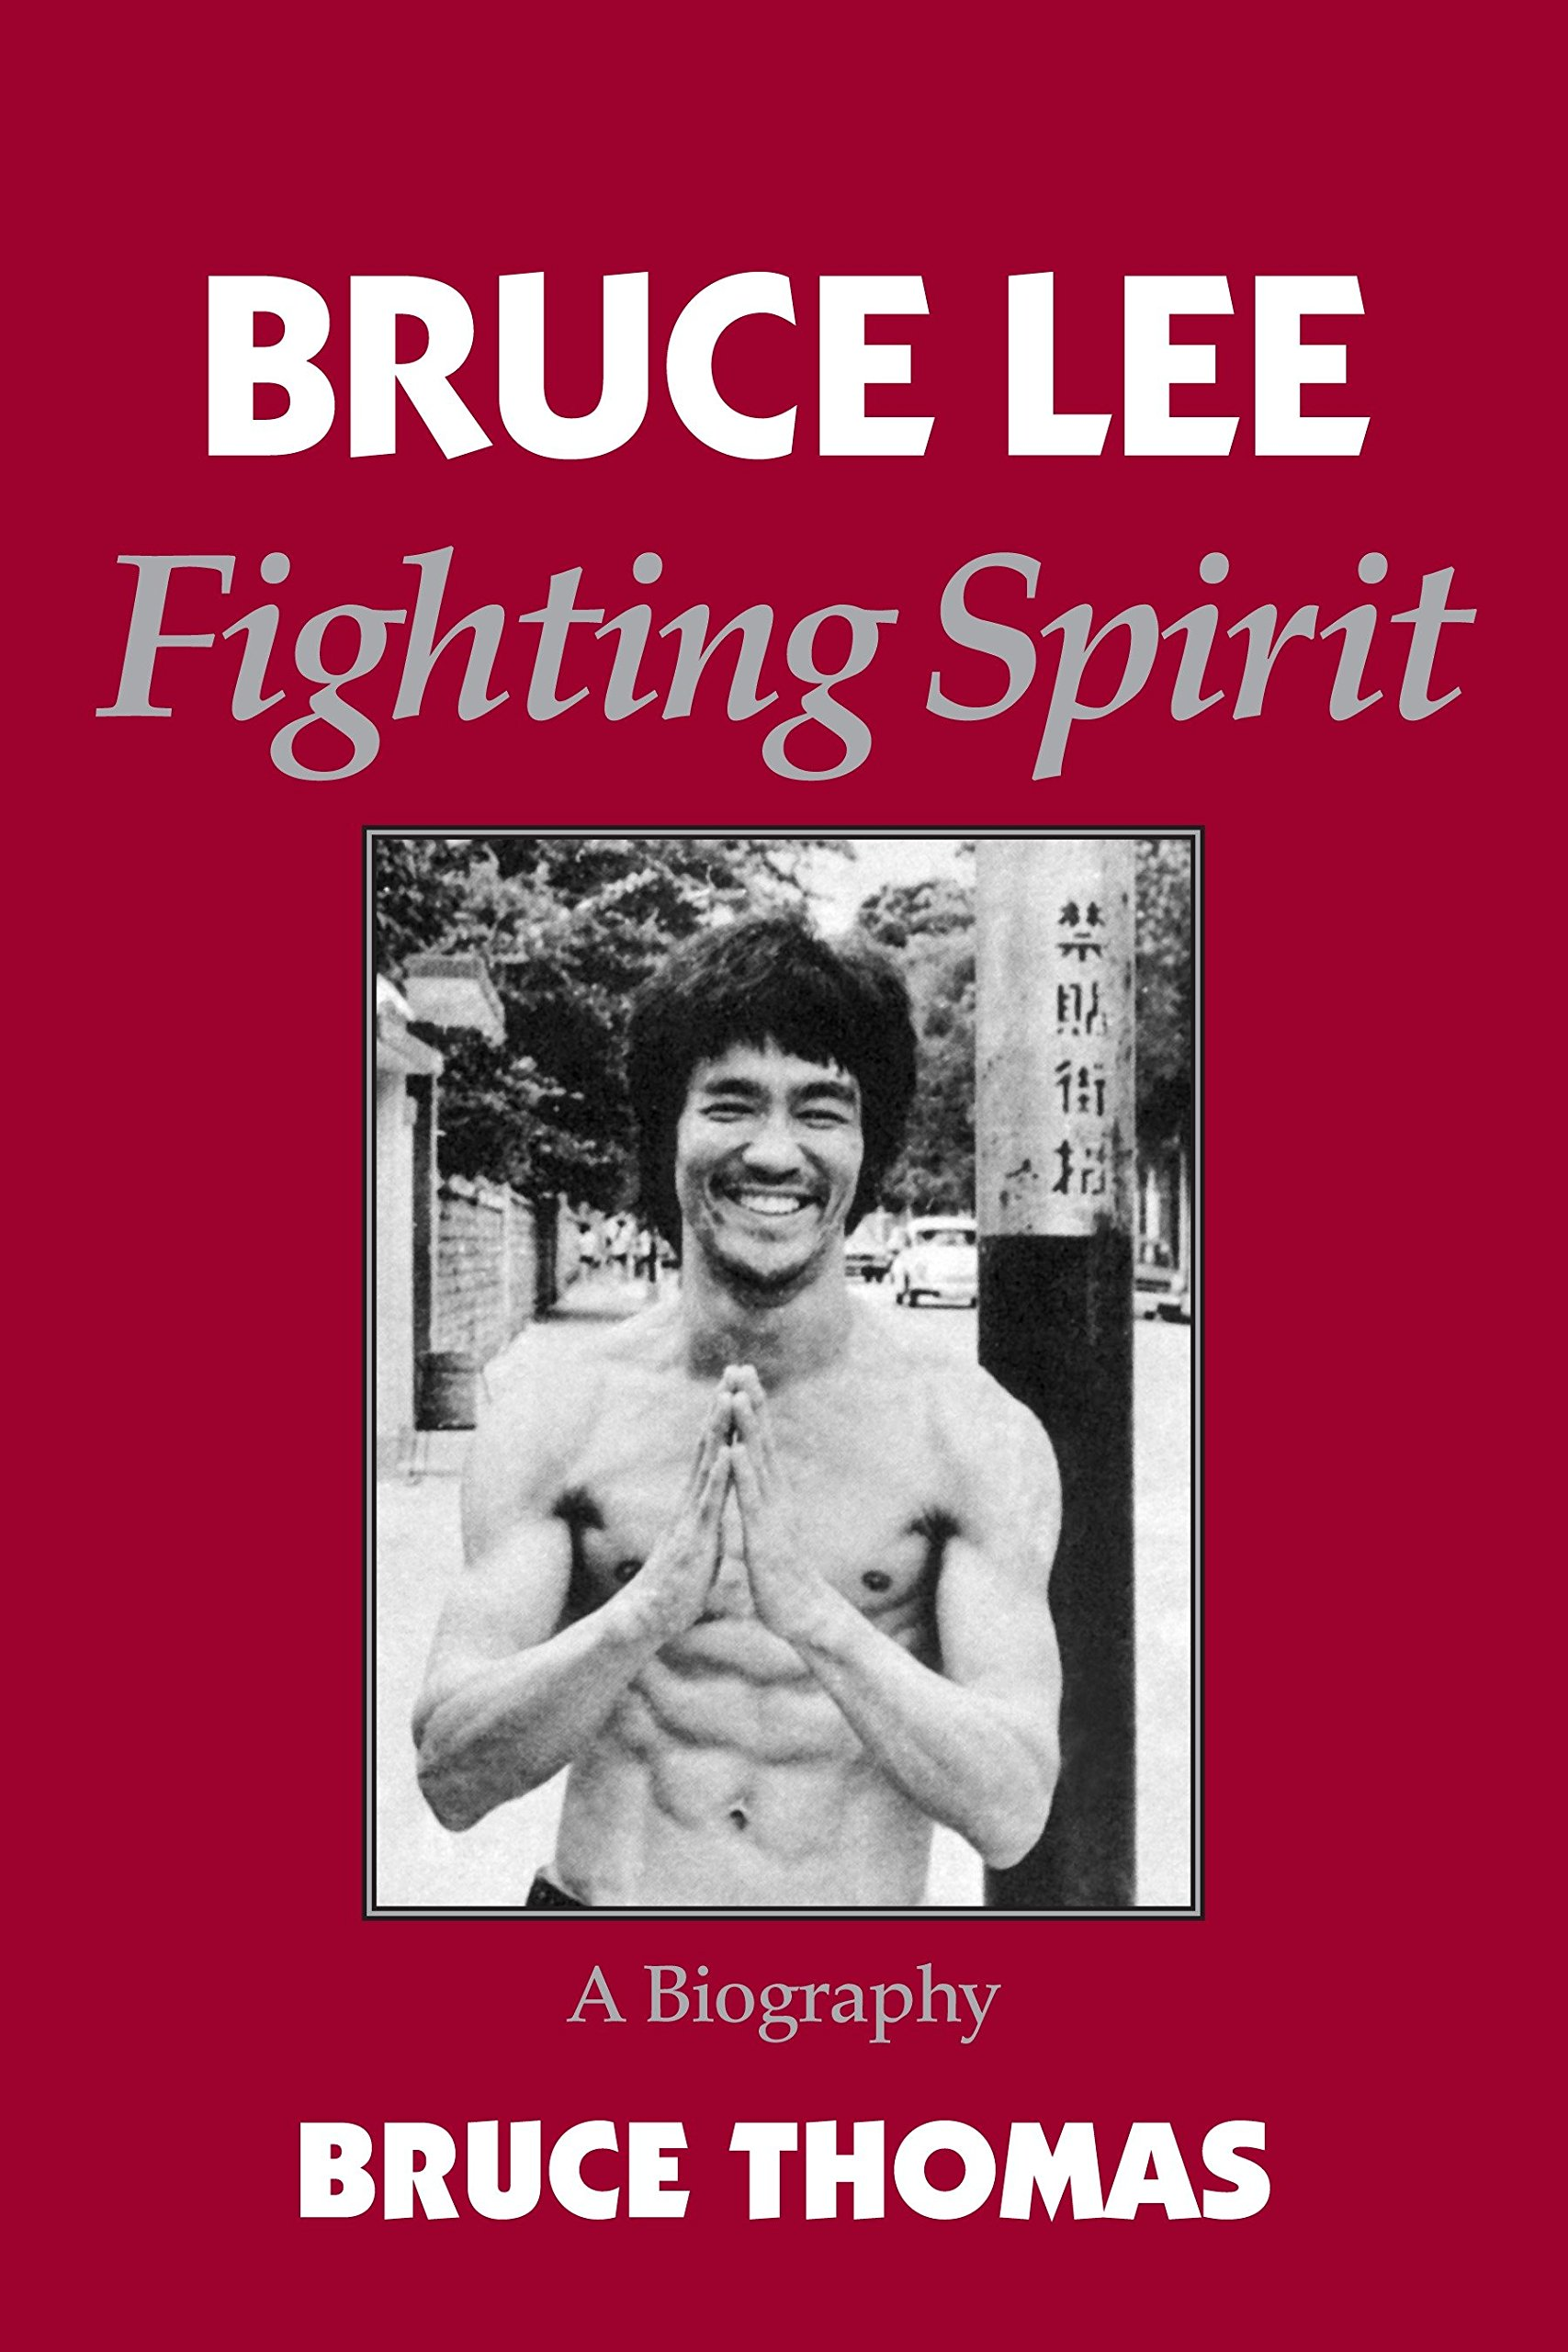 Bruce lee fighting spirit pdf download.